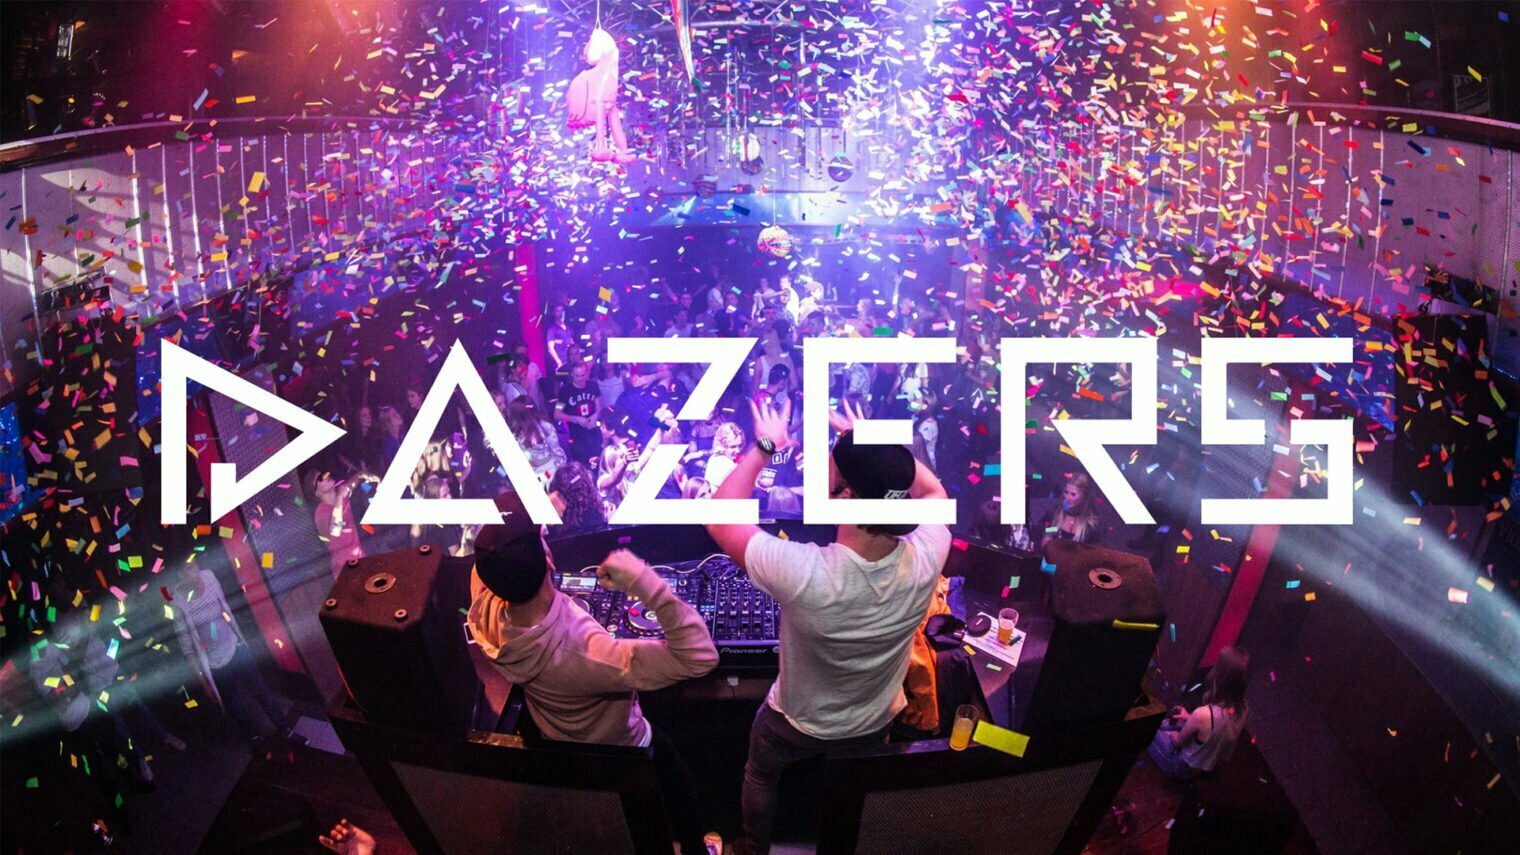 Pixelwish, Projecten, Dazers, Logo, Banner, Mobile, DJ, Party, Confetti, Club